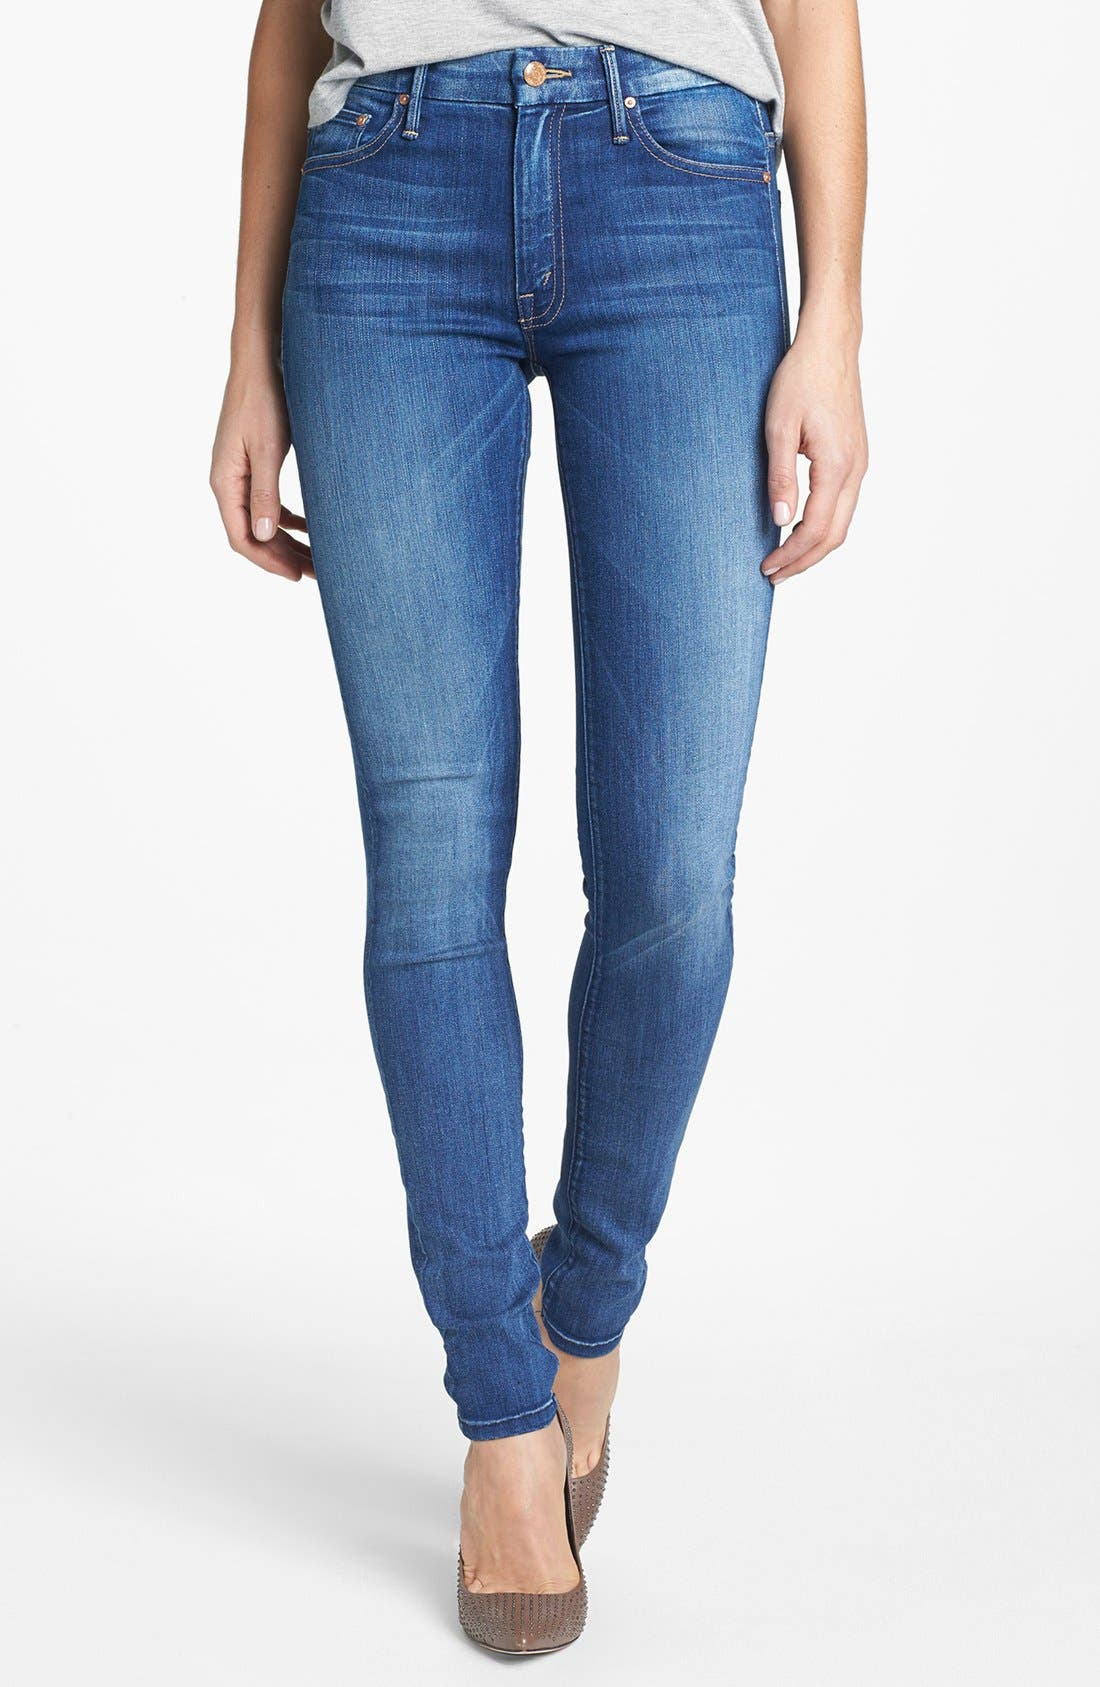 Alternate Image 1 Selected - MOTHER 'The Looker' High Rise Skinny Jeans (Devil in a Blue Suit)